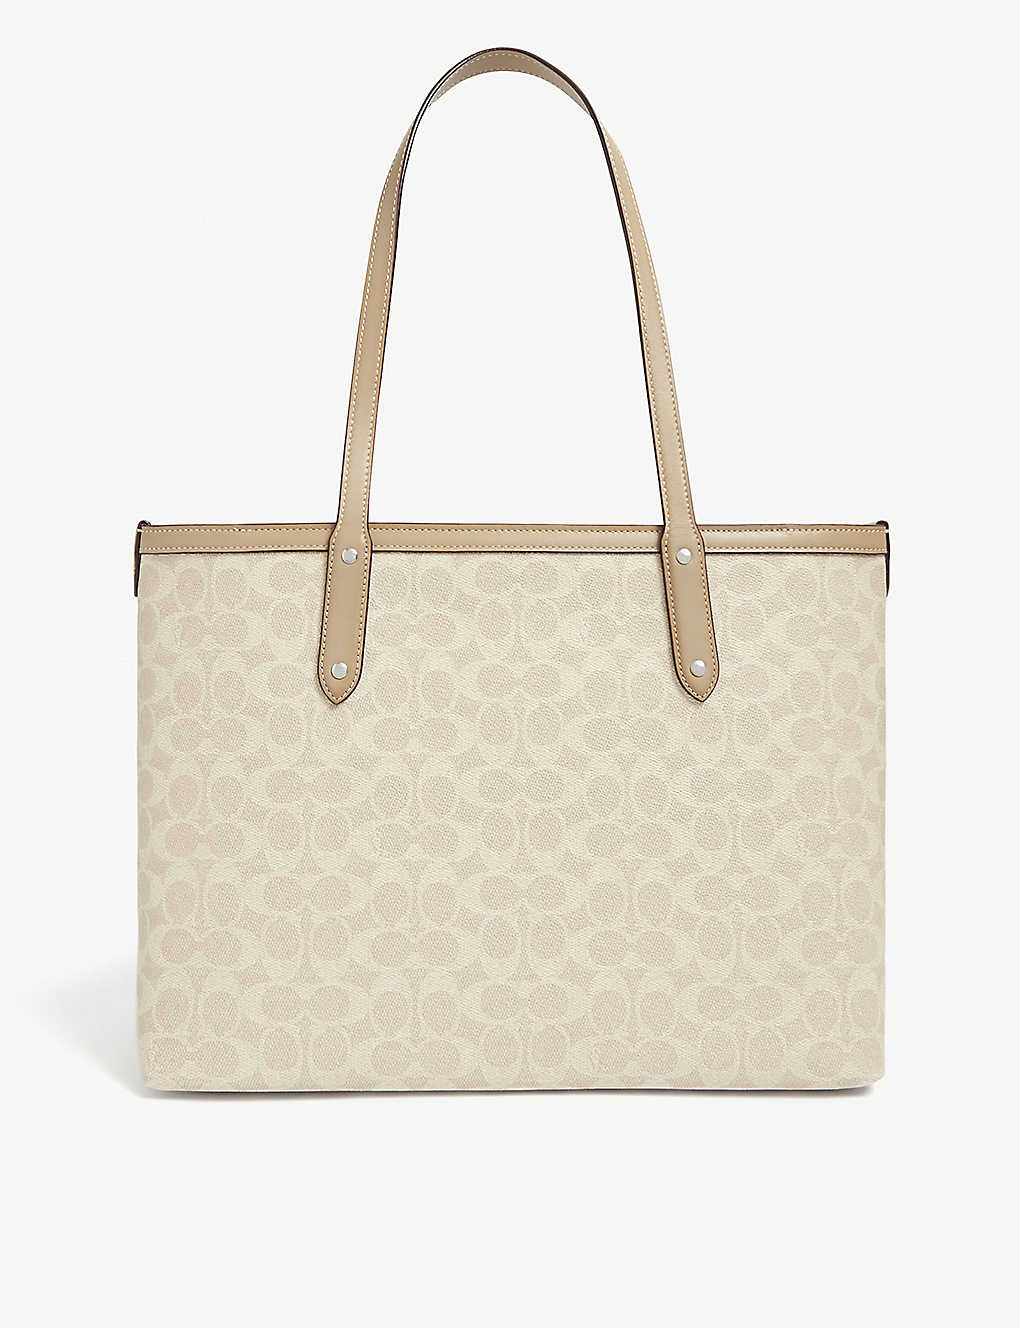 COACH: Central all-over logo leather tote